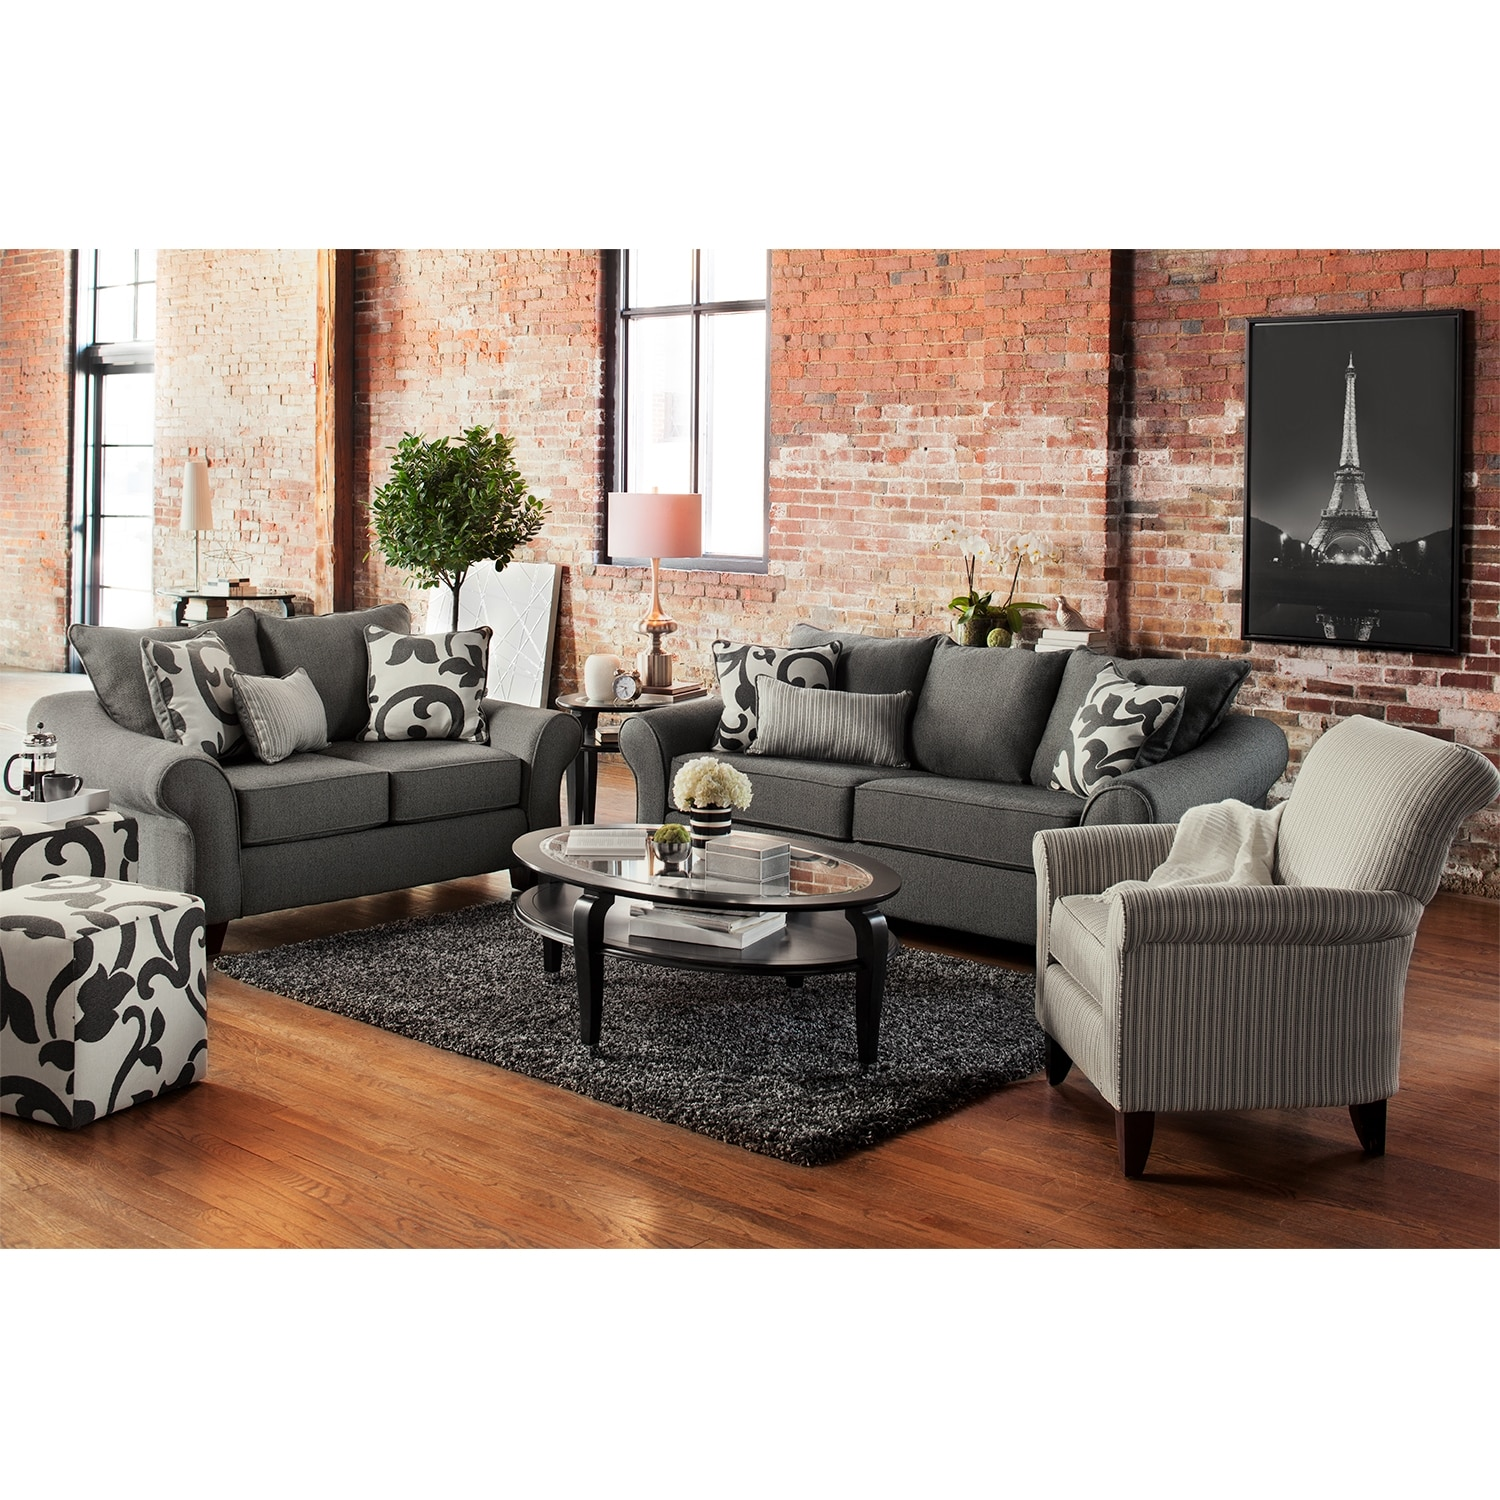 Colette sofa gray value city furniture Sofa for living room